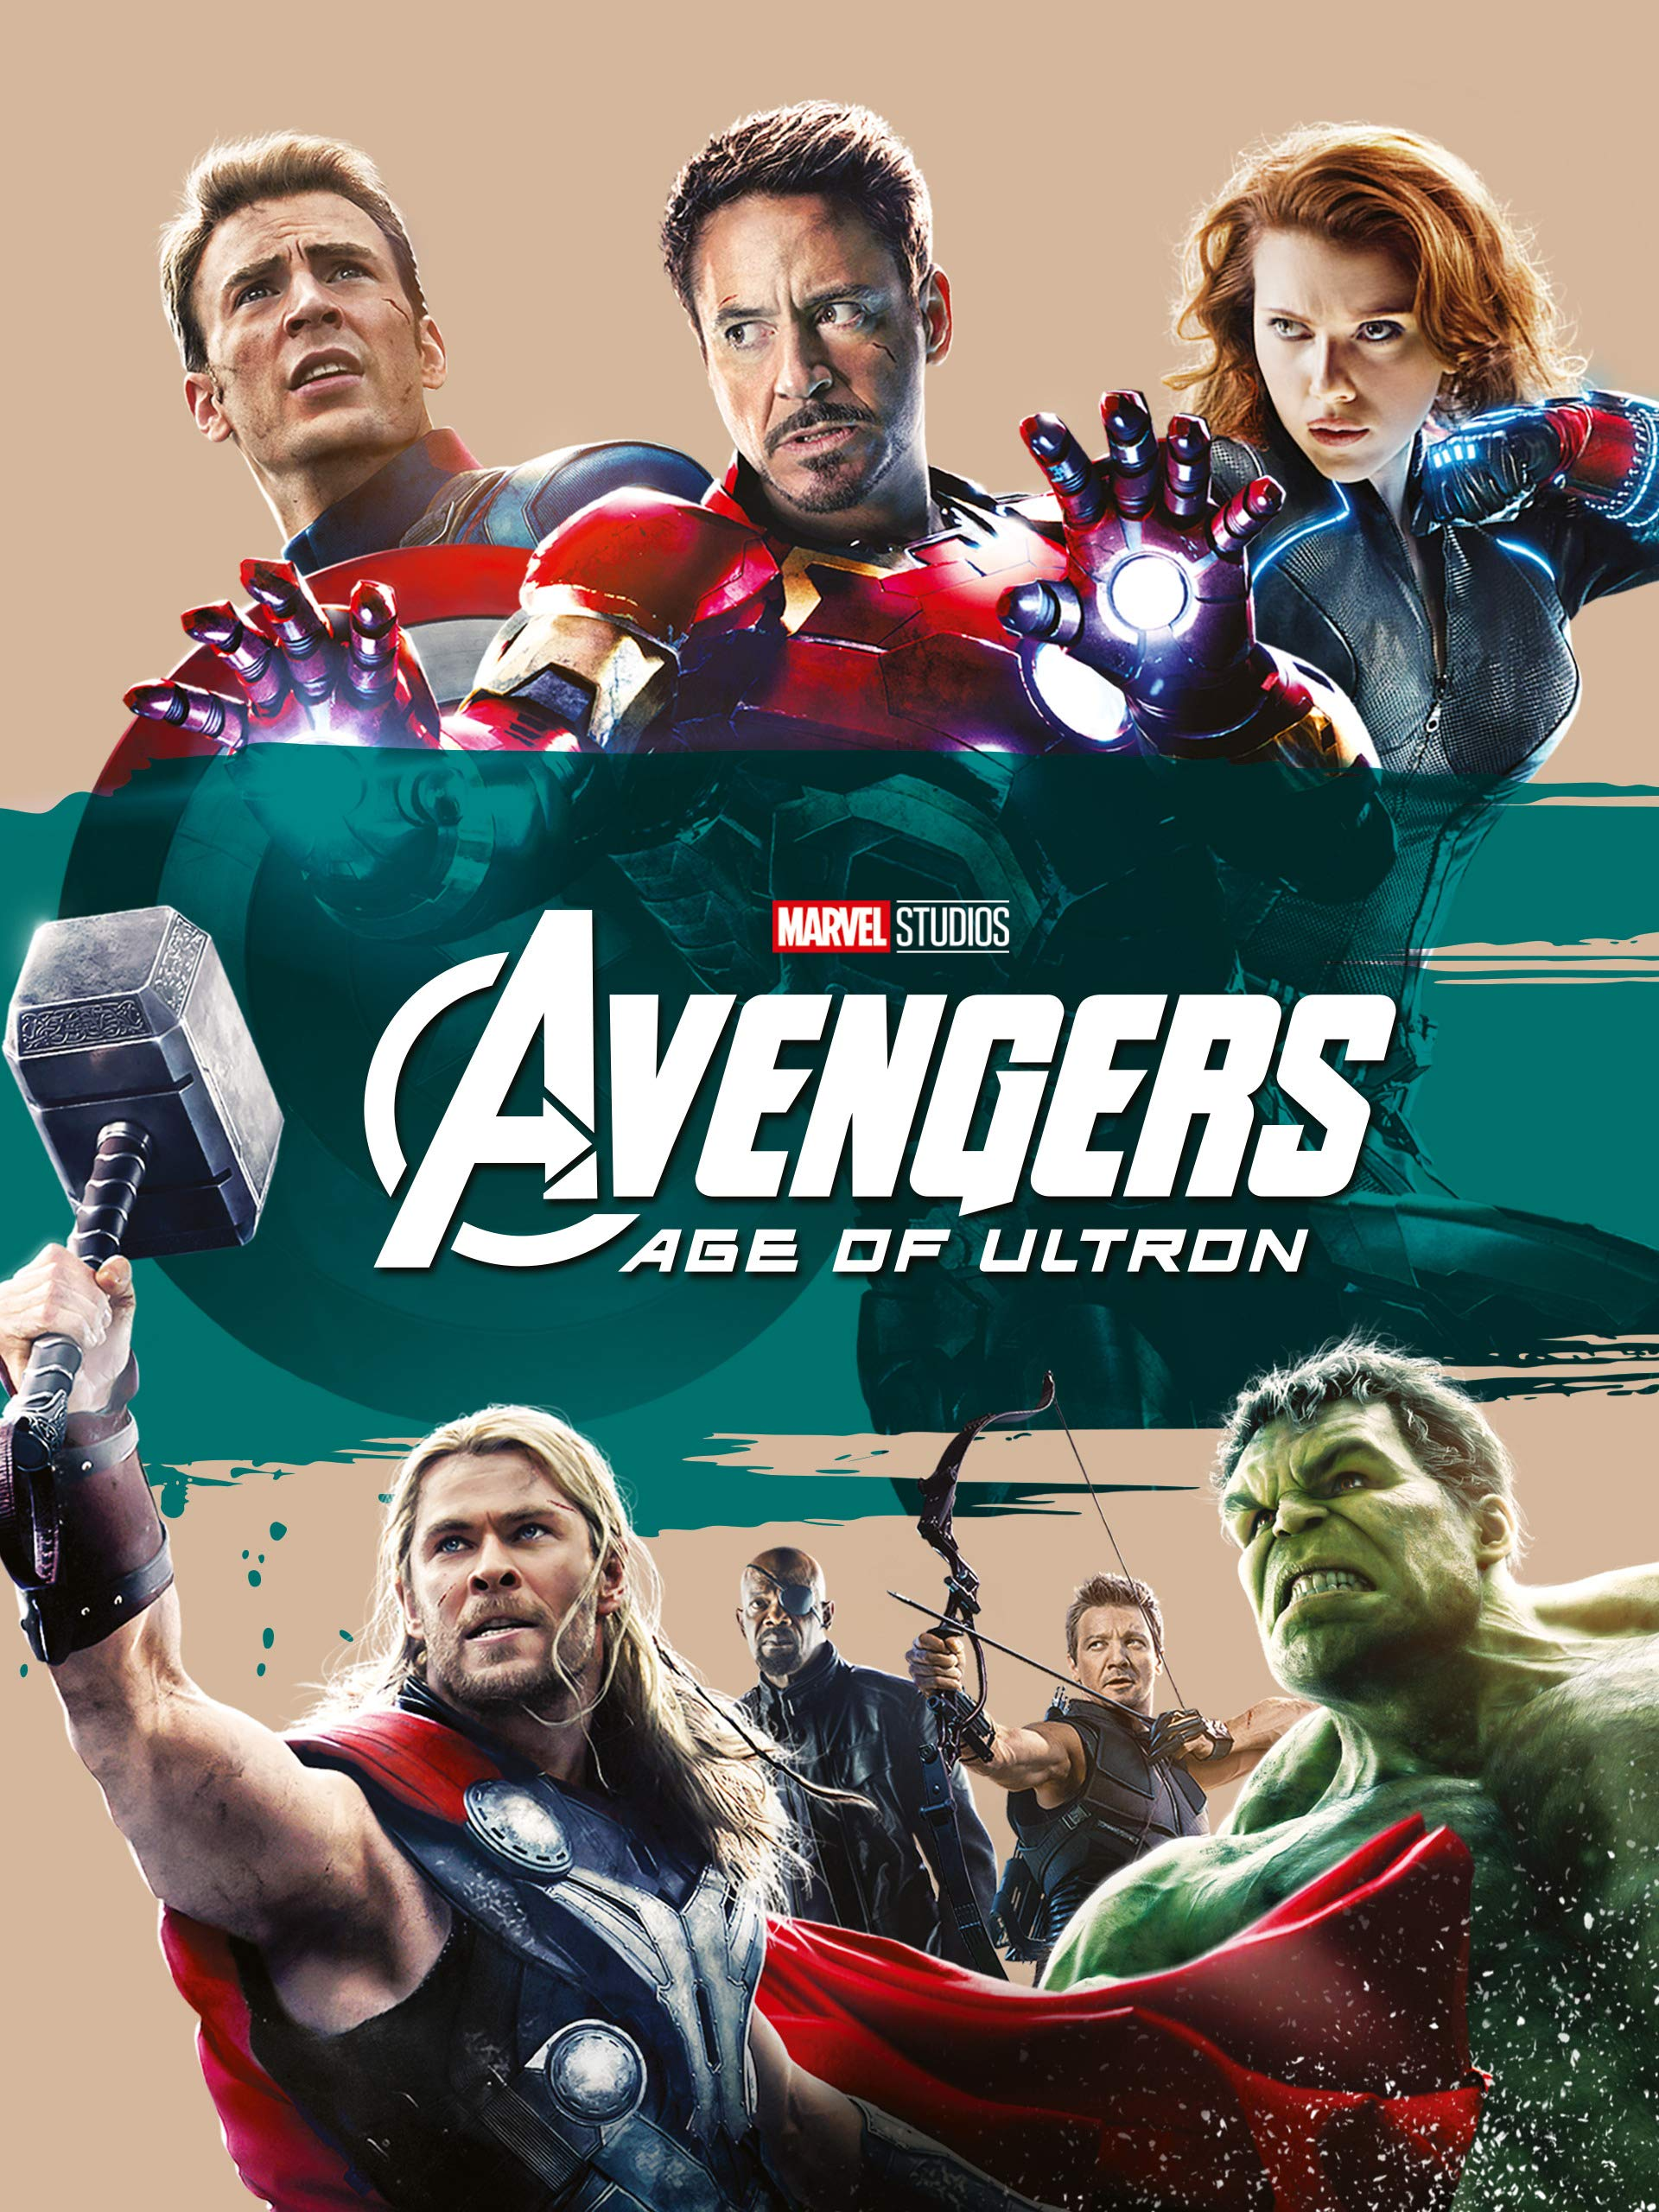 Amazon co uk: Watch Marvel's The Avengers: Age Of Ultron | Prime Video